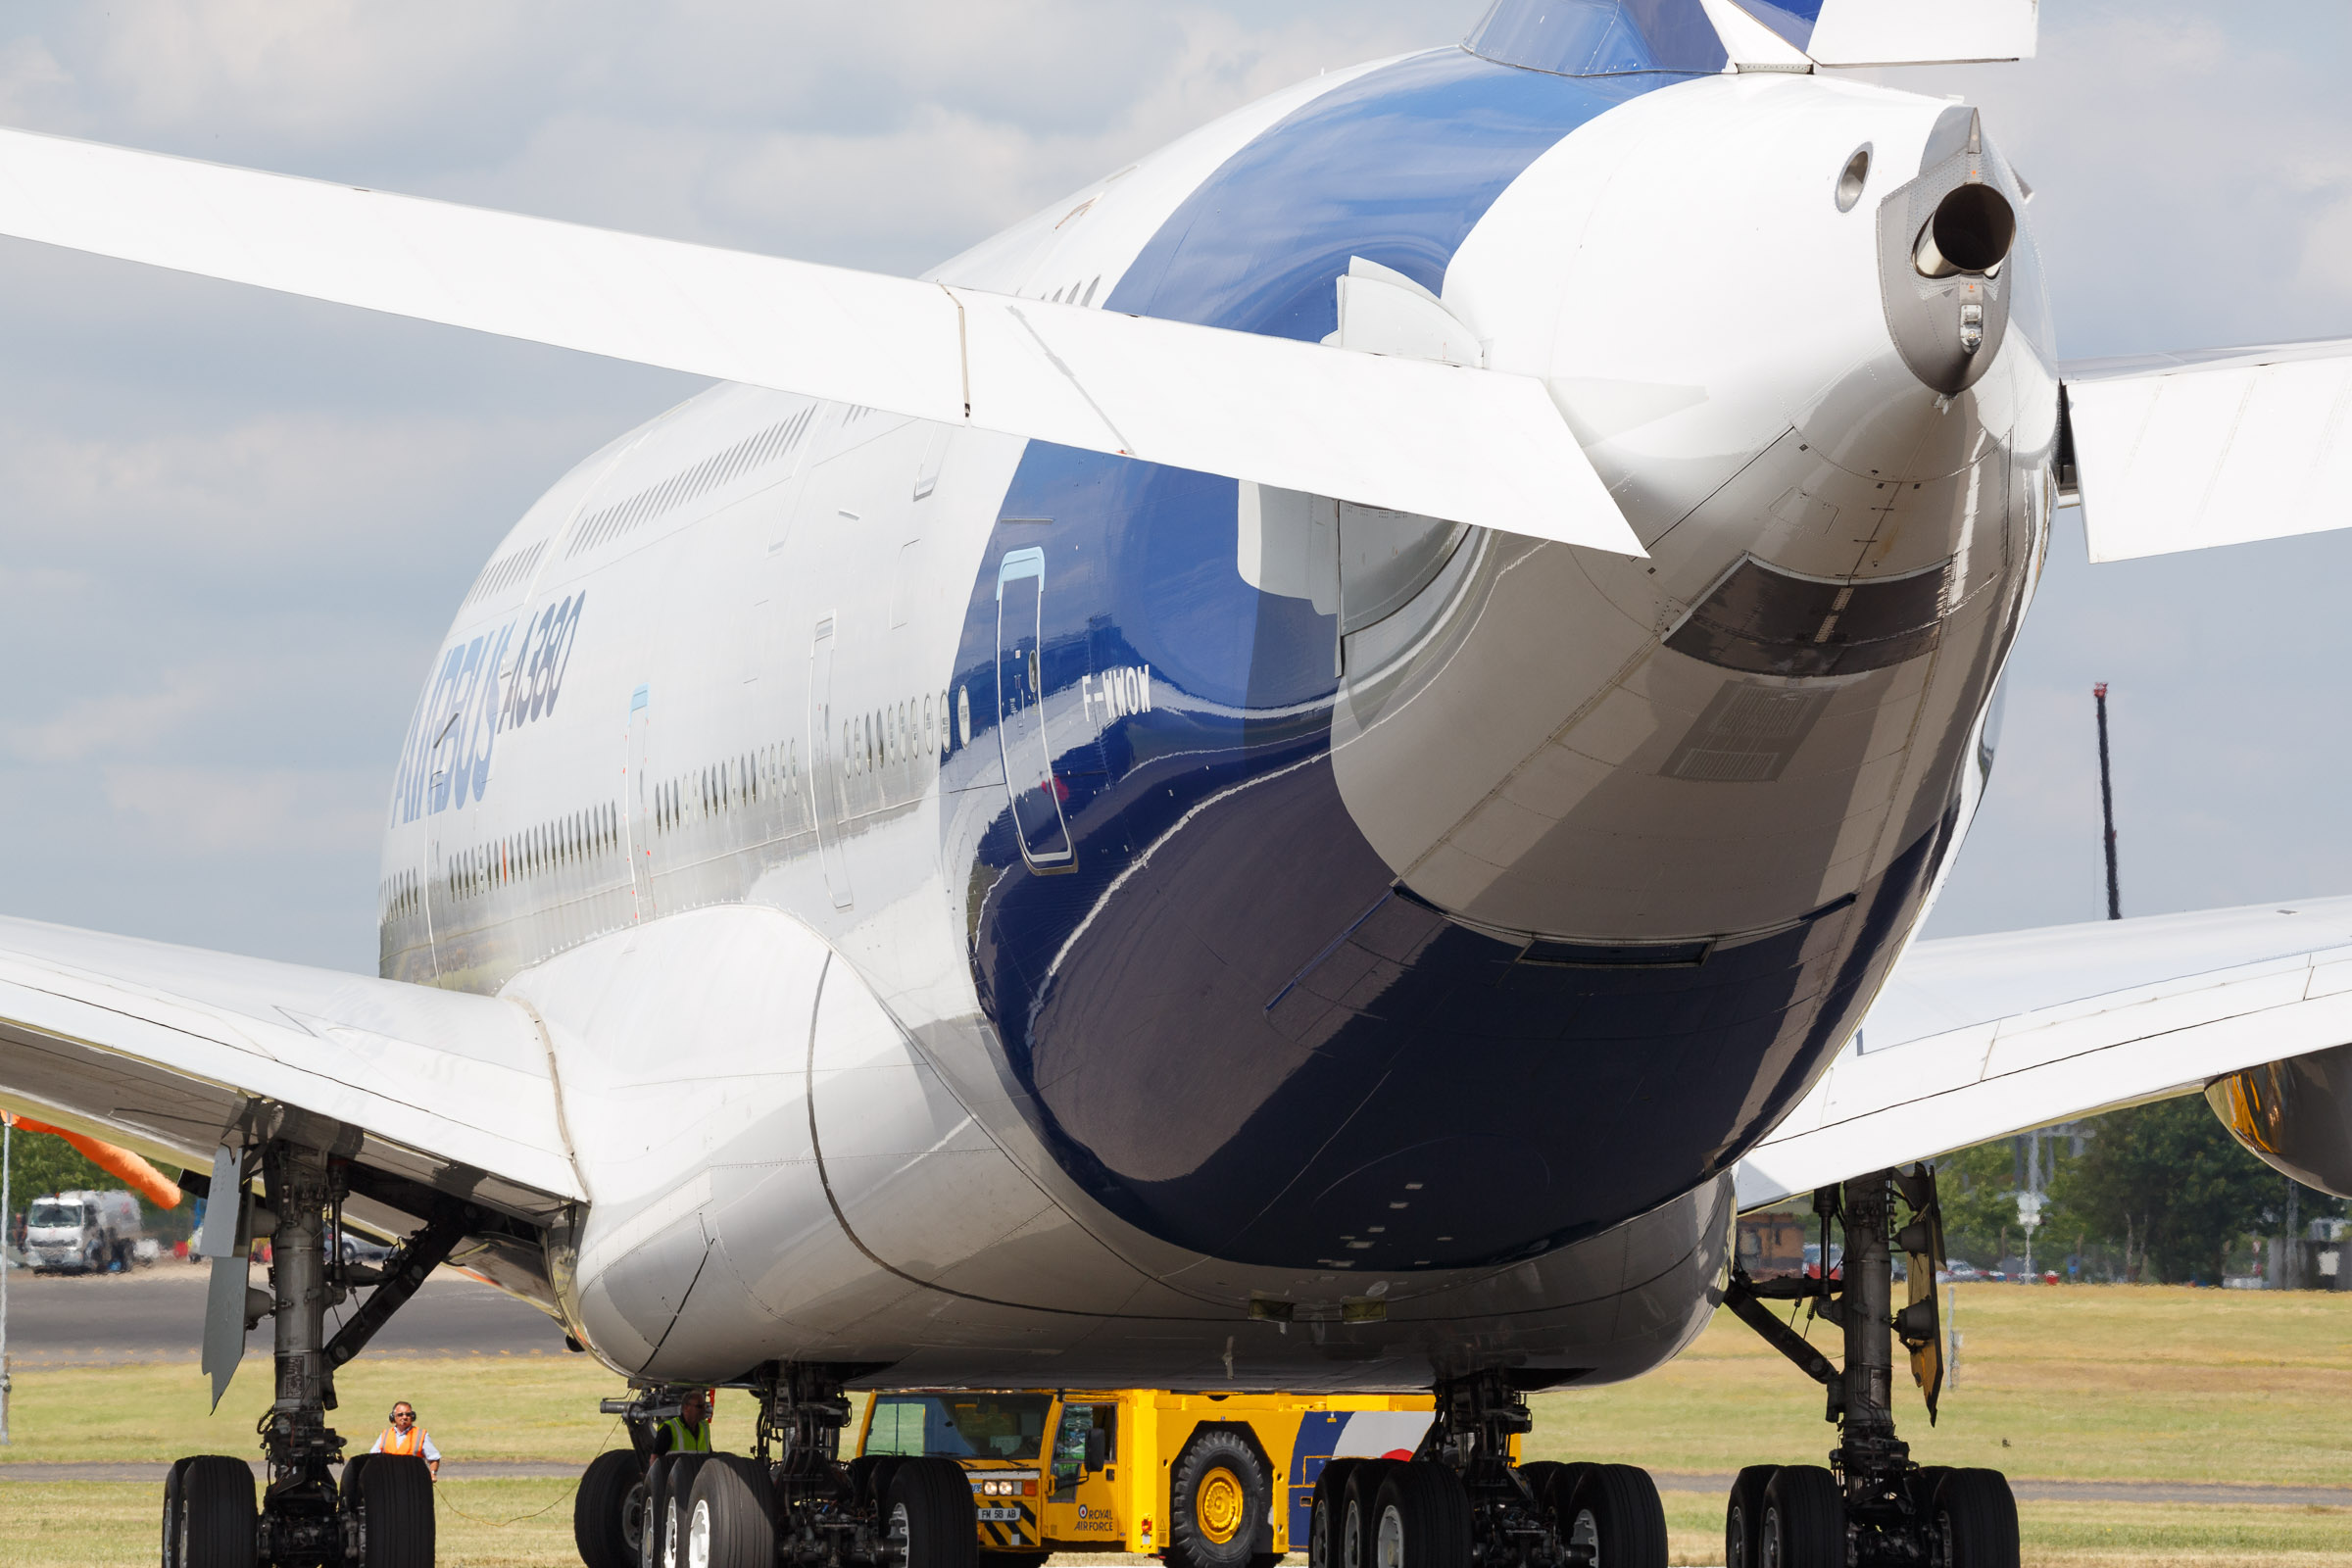 The Airbus A380 is a massive two-deck aircraft that can hold up to 550 passengers.